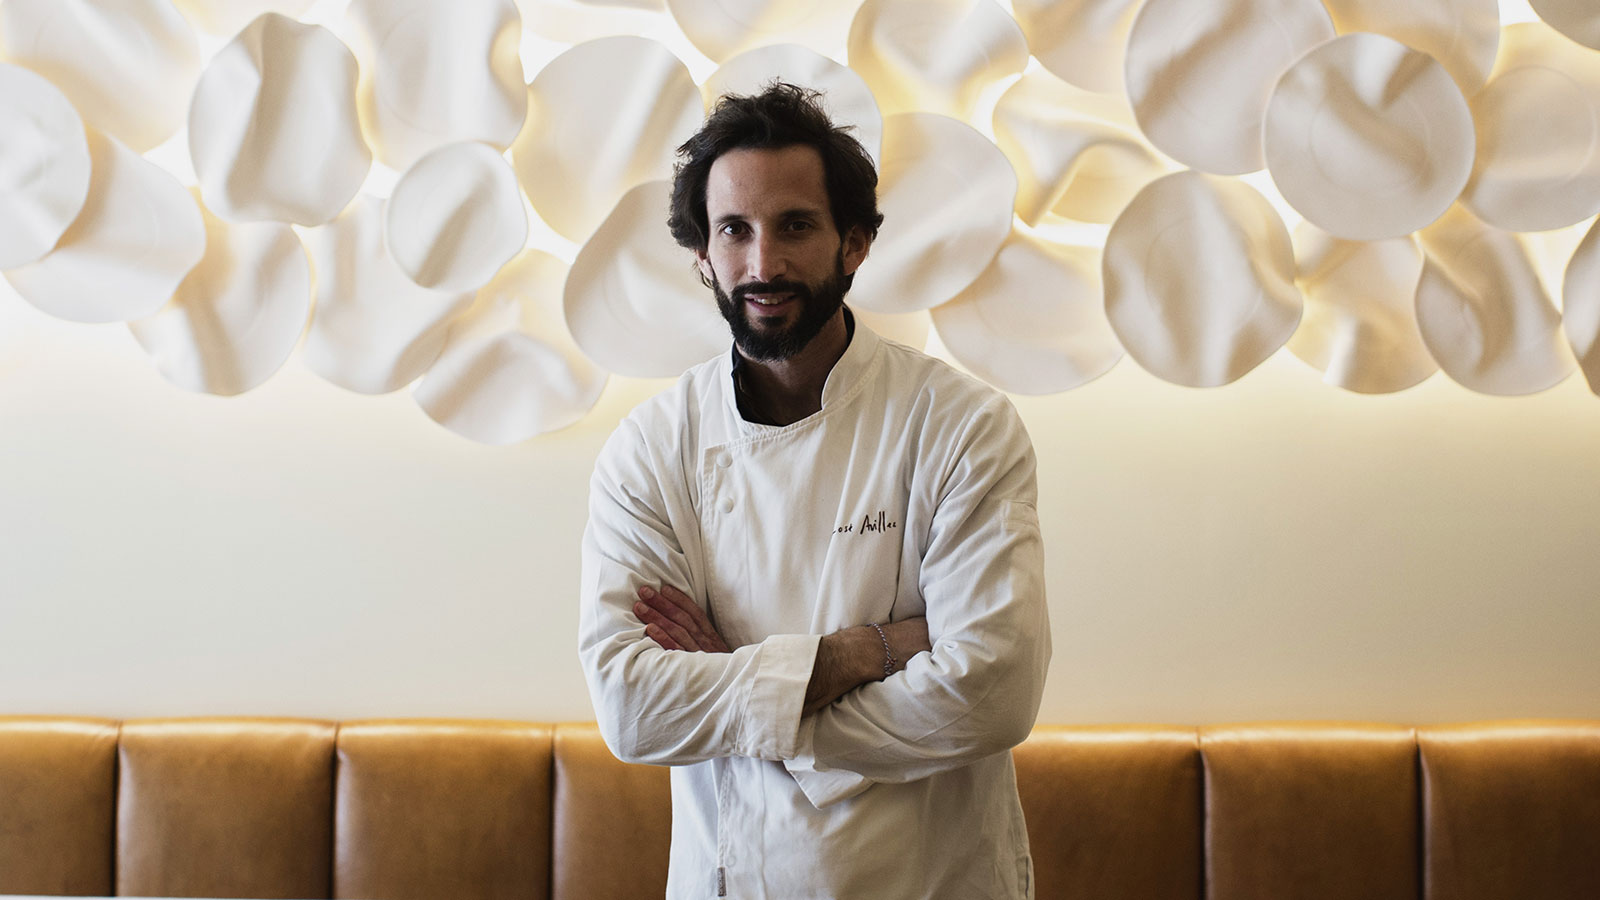 How This Lisbon Chef Built a Restaurant Empire That Makes People Literally Weep